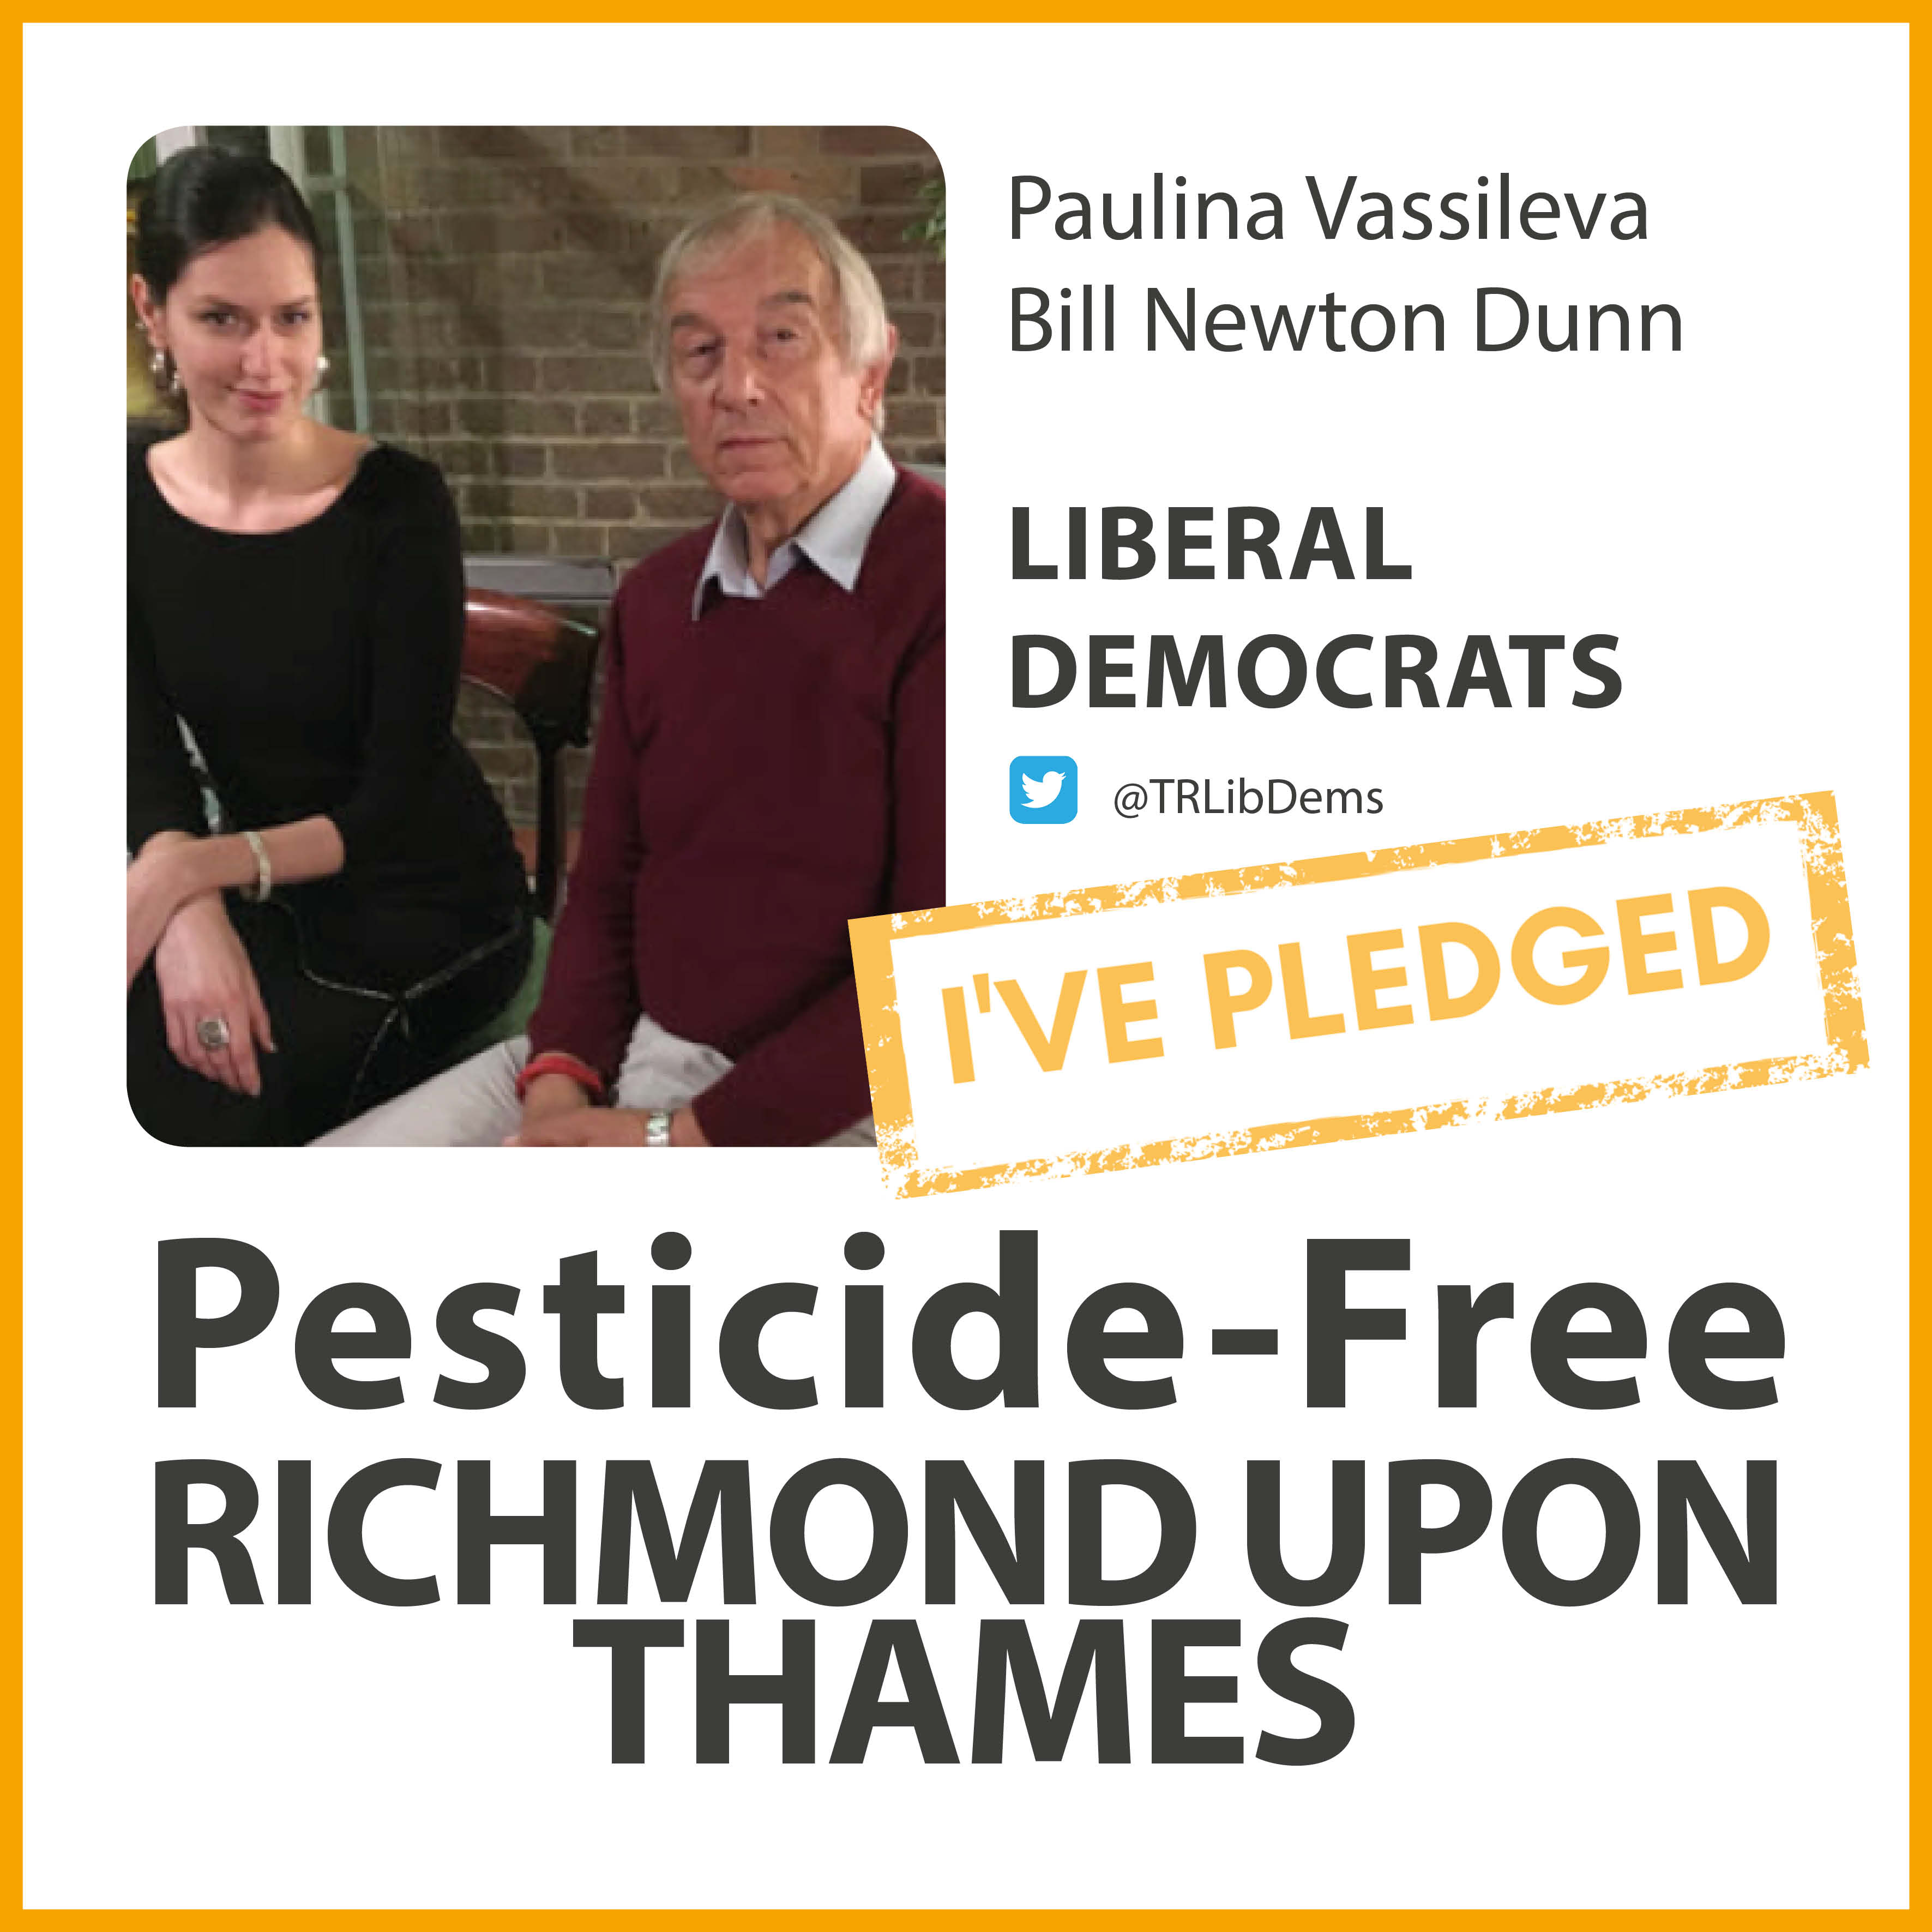 South Richmond Lib Dems have taken the pesticide-free pledge